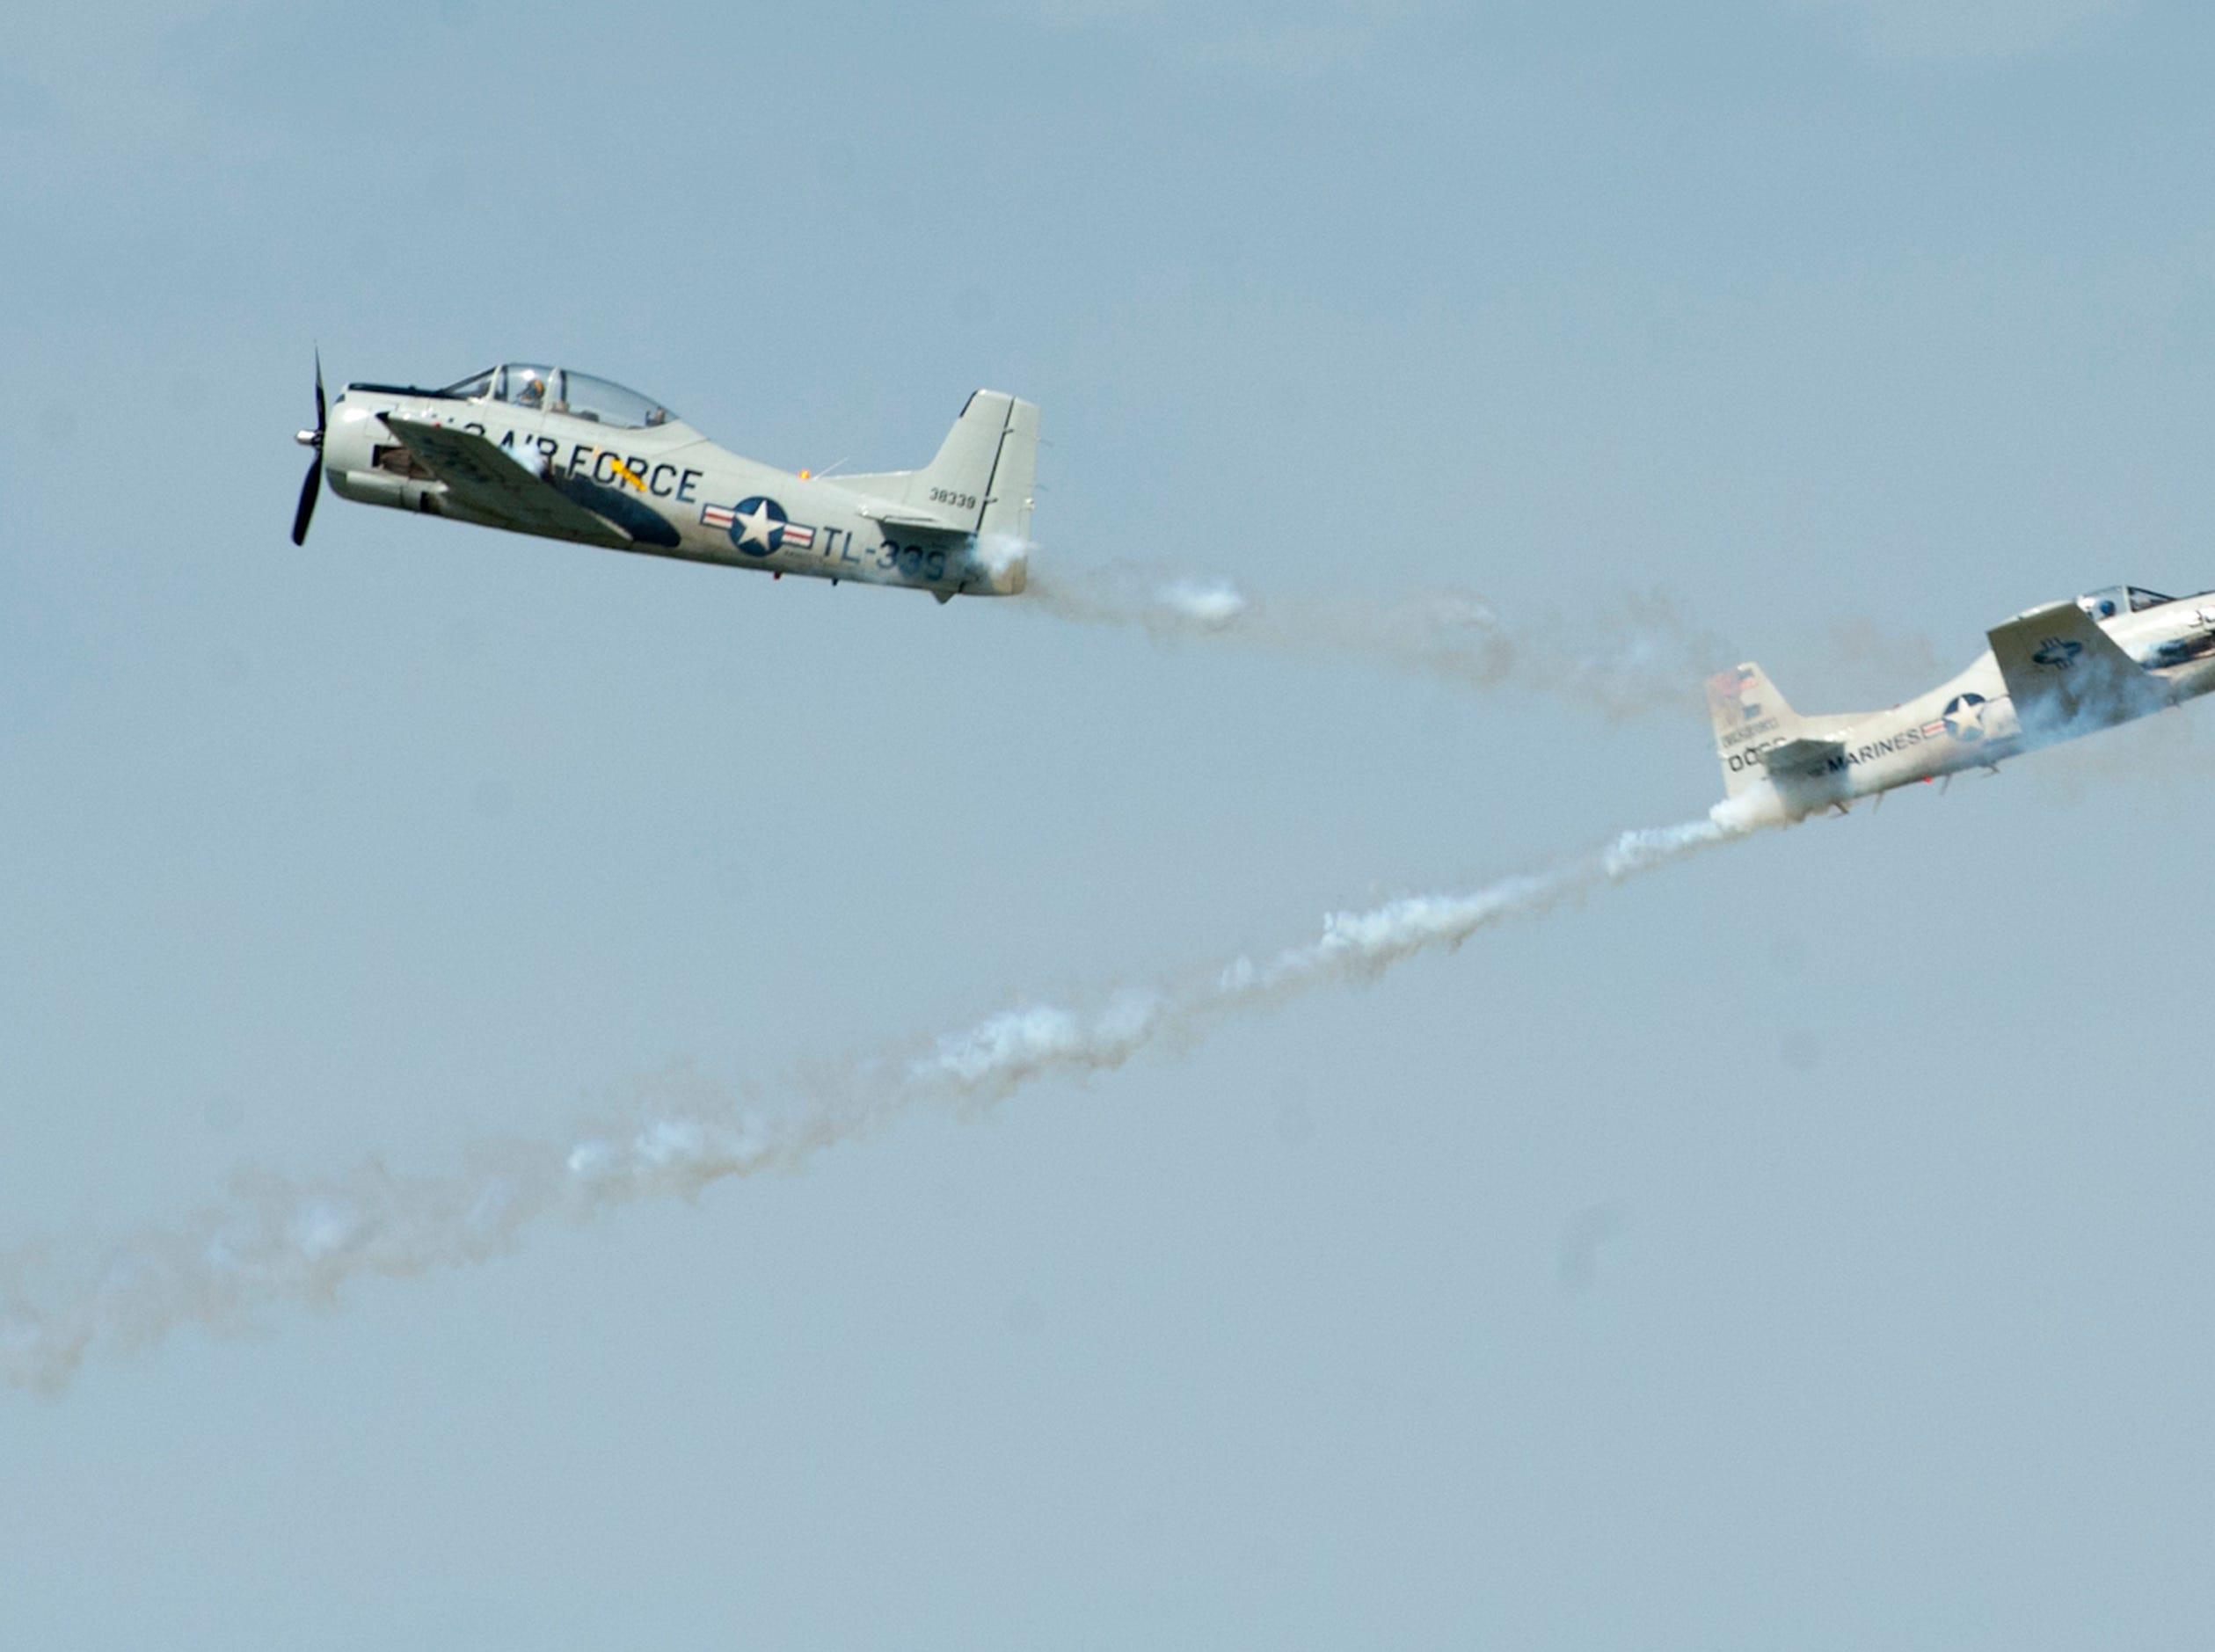 Trojan Thunder T-28s perform at the 2019 Thunder Over Louisville Air Show.13 April 2019